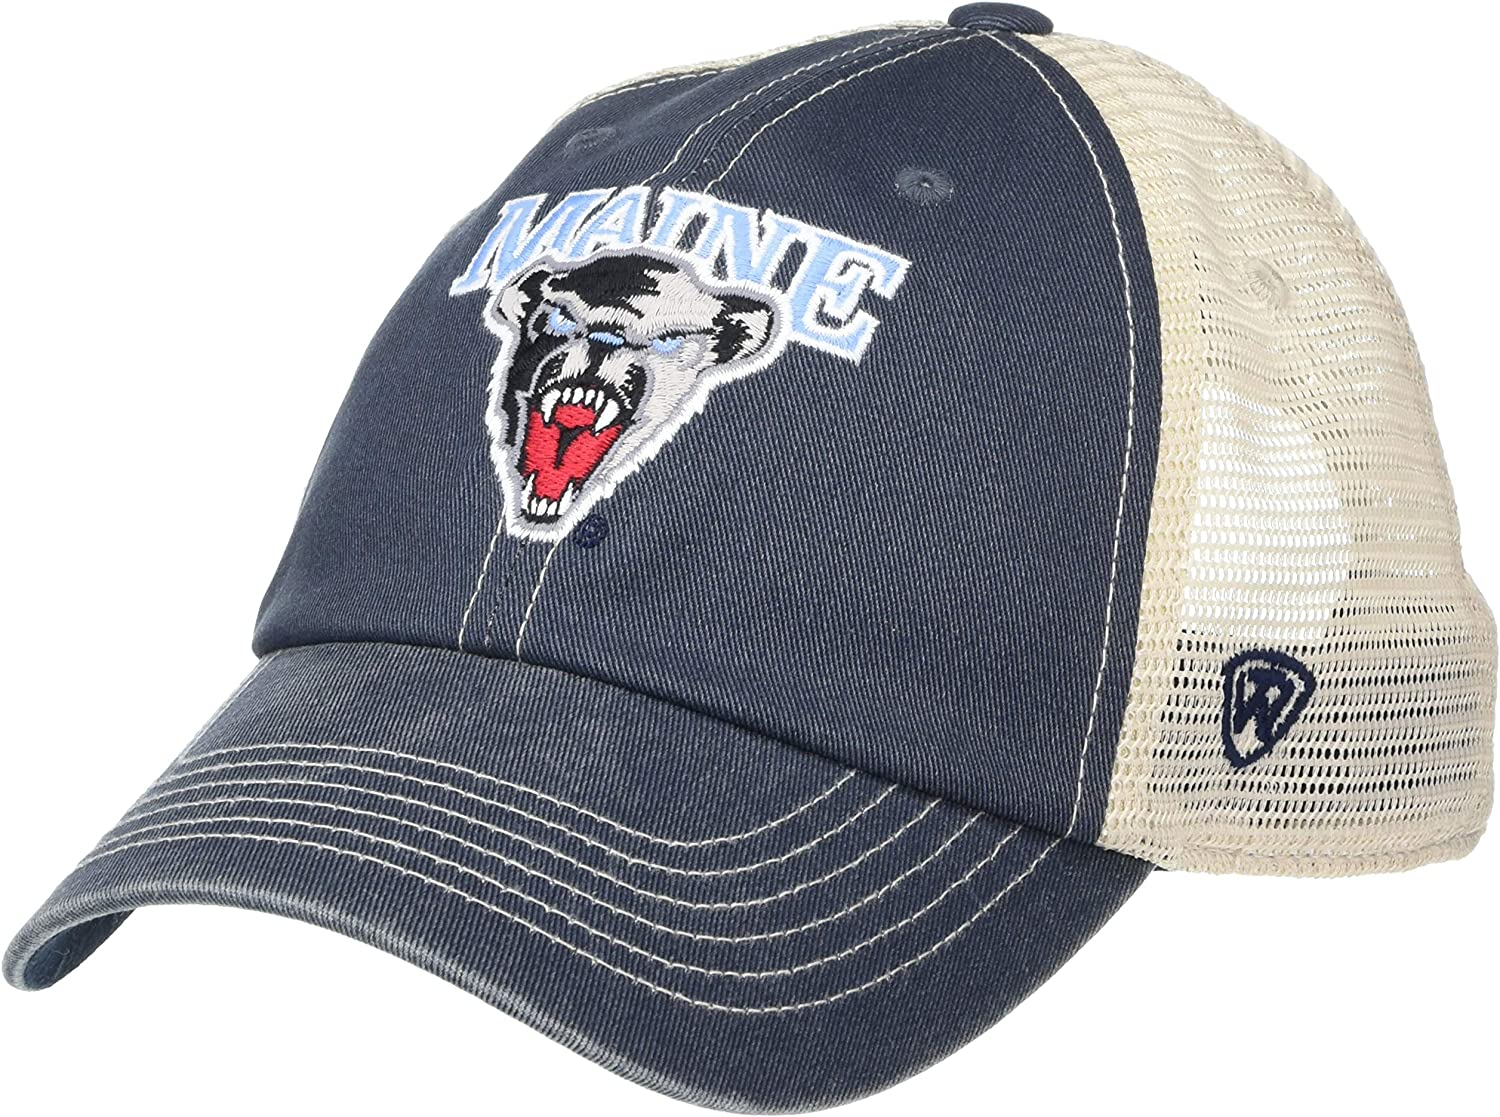 Top of the World NCAA Mens Hat Adjustable Vintage Team Icon